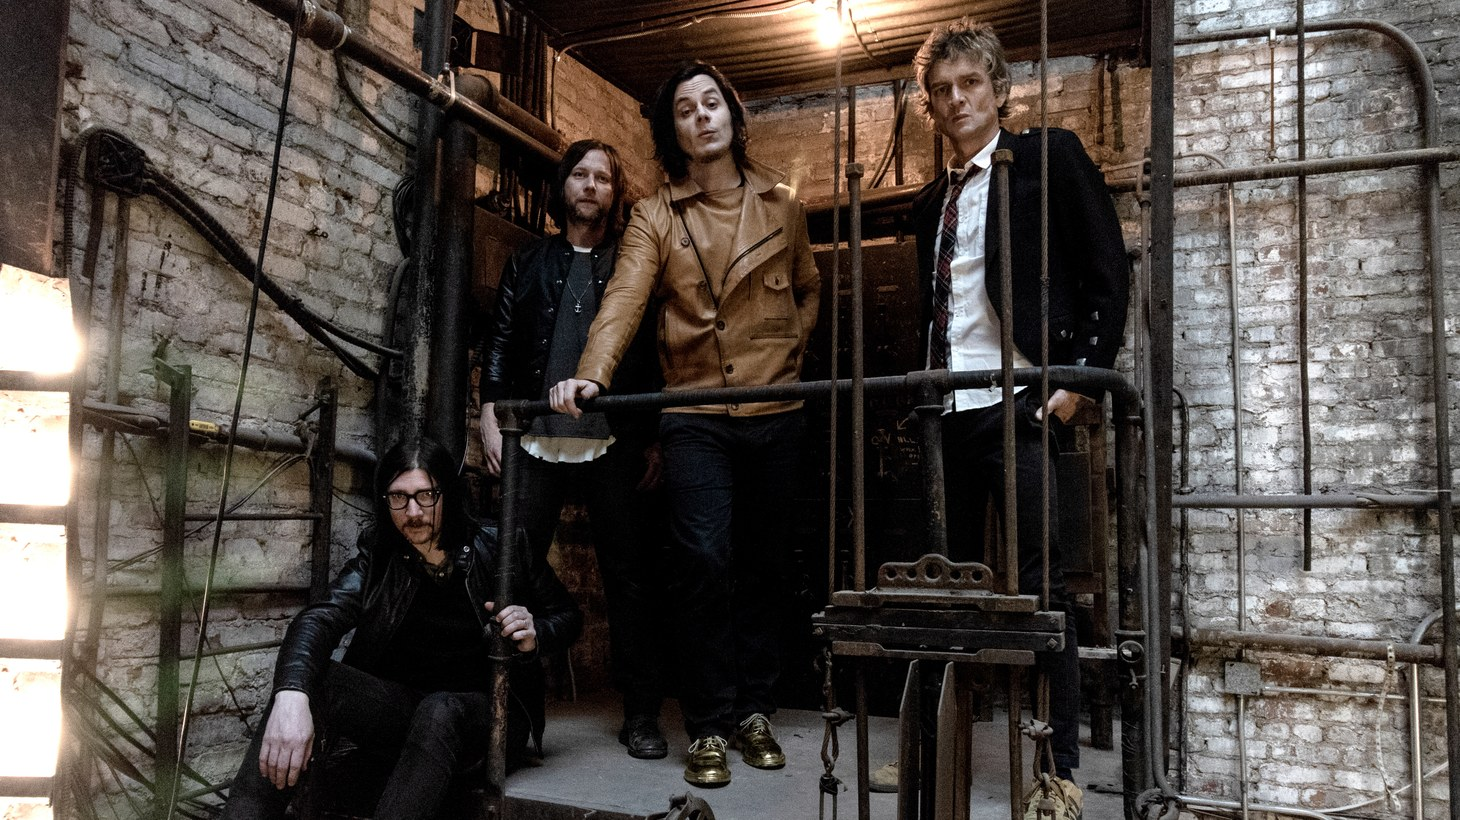 After over 10 years, Jack White, Brendan Benson, Jack Lawrence & Patrick Keeler are back with new music as The Raconteurs.